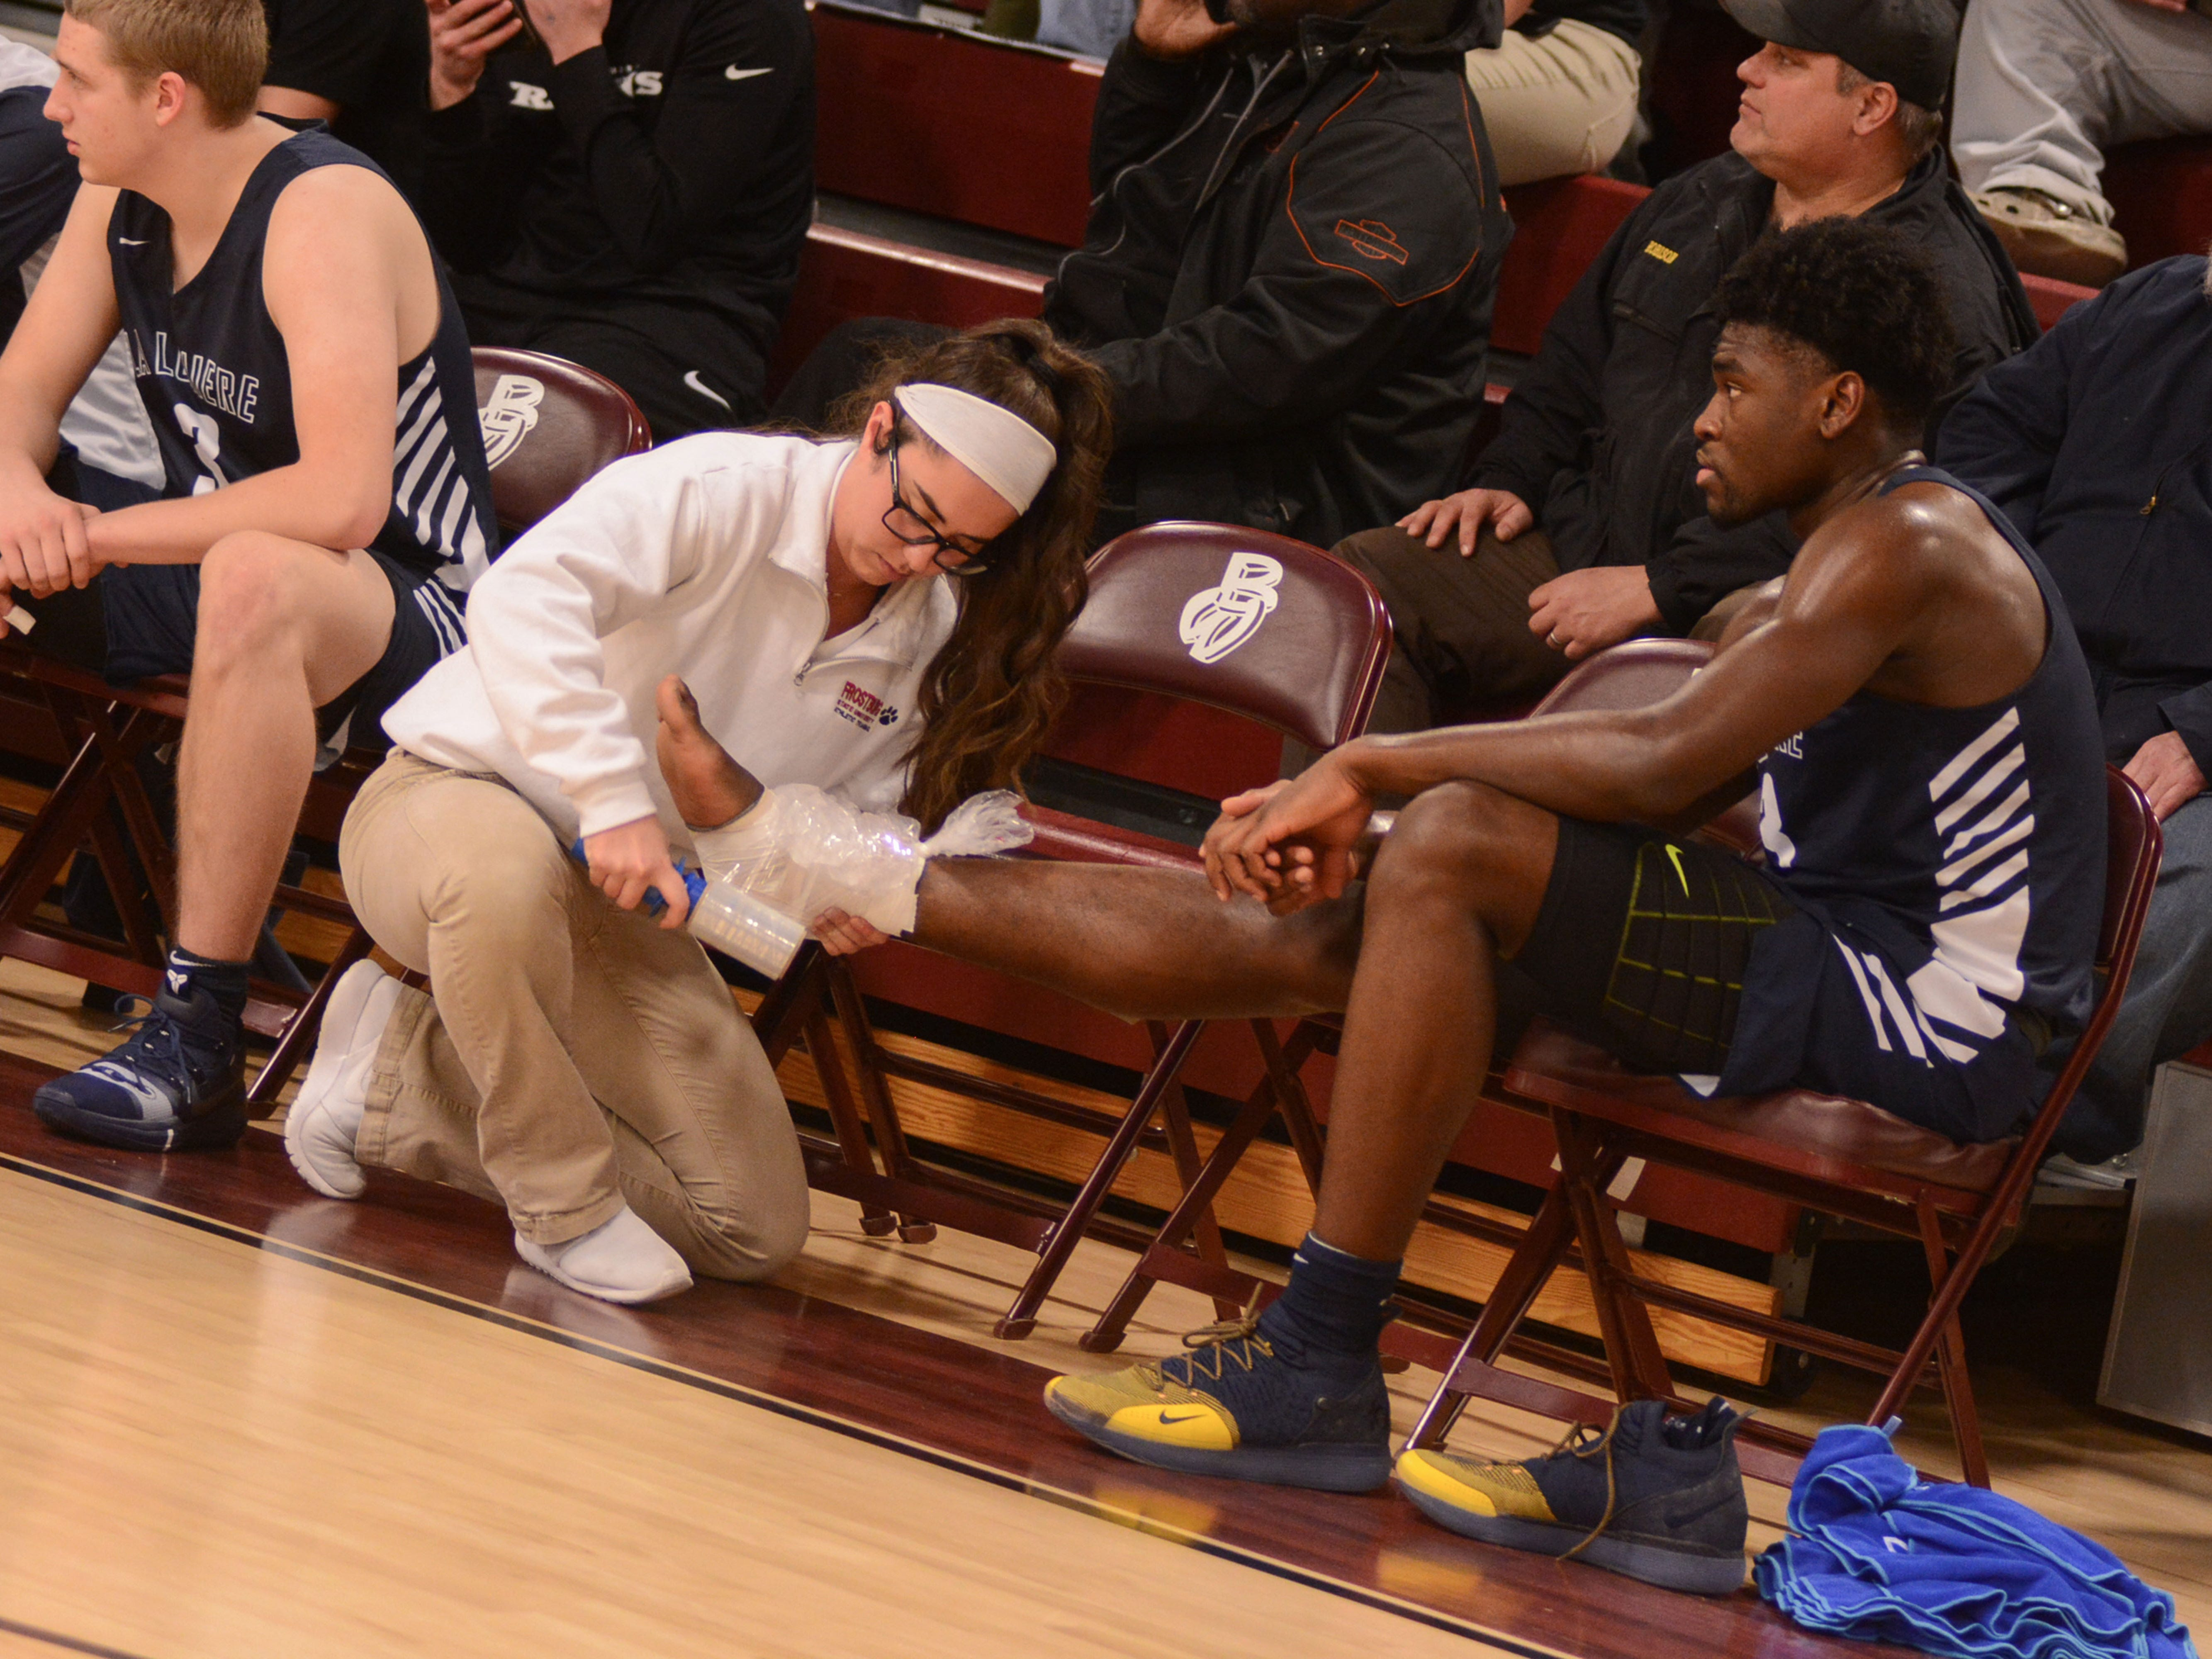 Former McQuaid star Isaiah Stewart, who is in his second season at the La Lumiere School in La Porte, Indiana, has his ankle attended to by a trainer during the Bob Kirk Invitational Tournament in Cumberland, Maryland